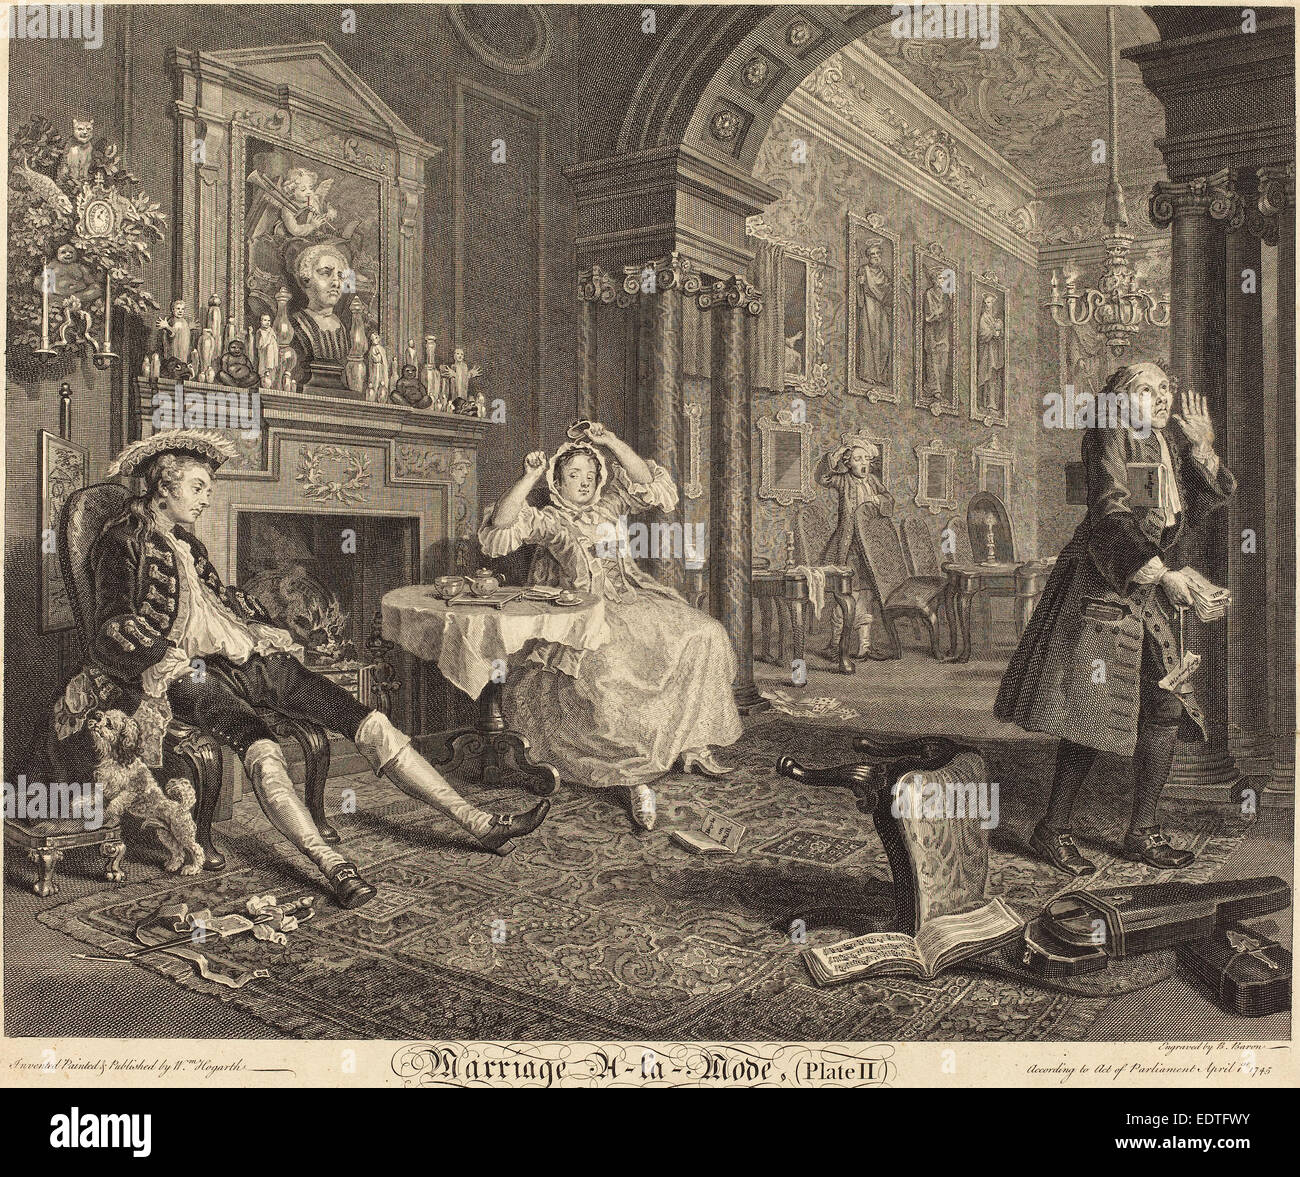 Bernard Baron after William Hogarth (French, 1696 - 1762), Marriage a la Mode: pl. 2, 1745, etching and engraving Stock Photo